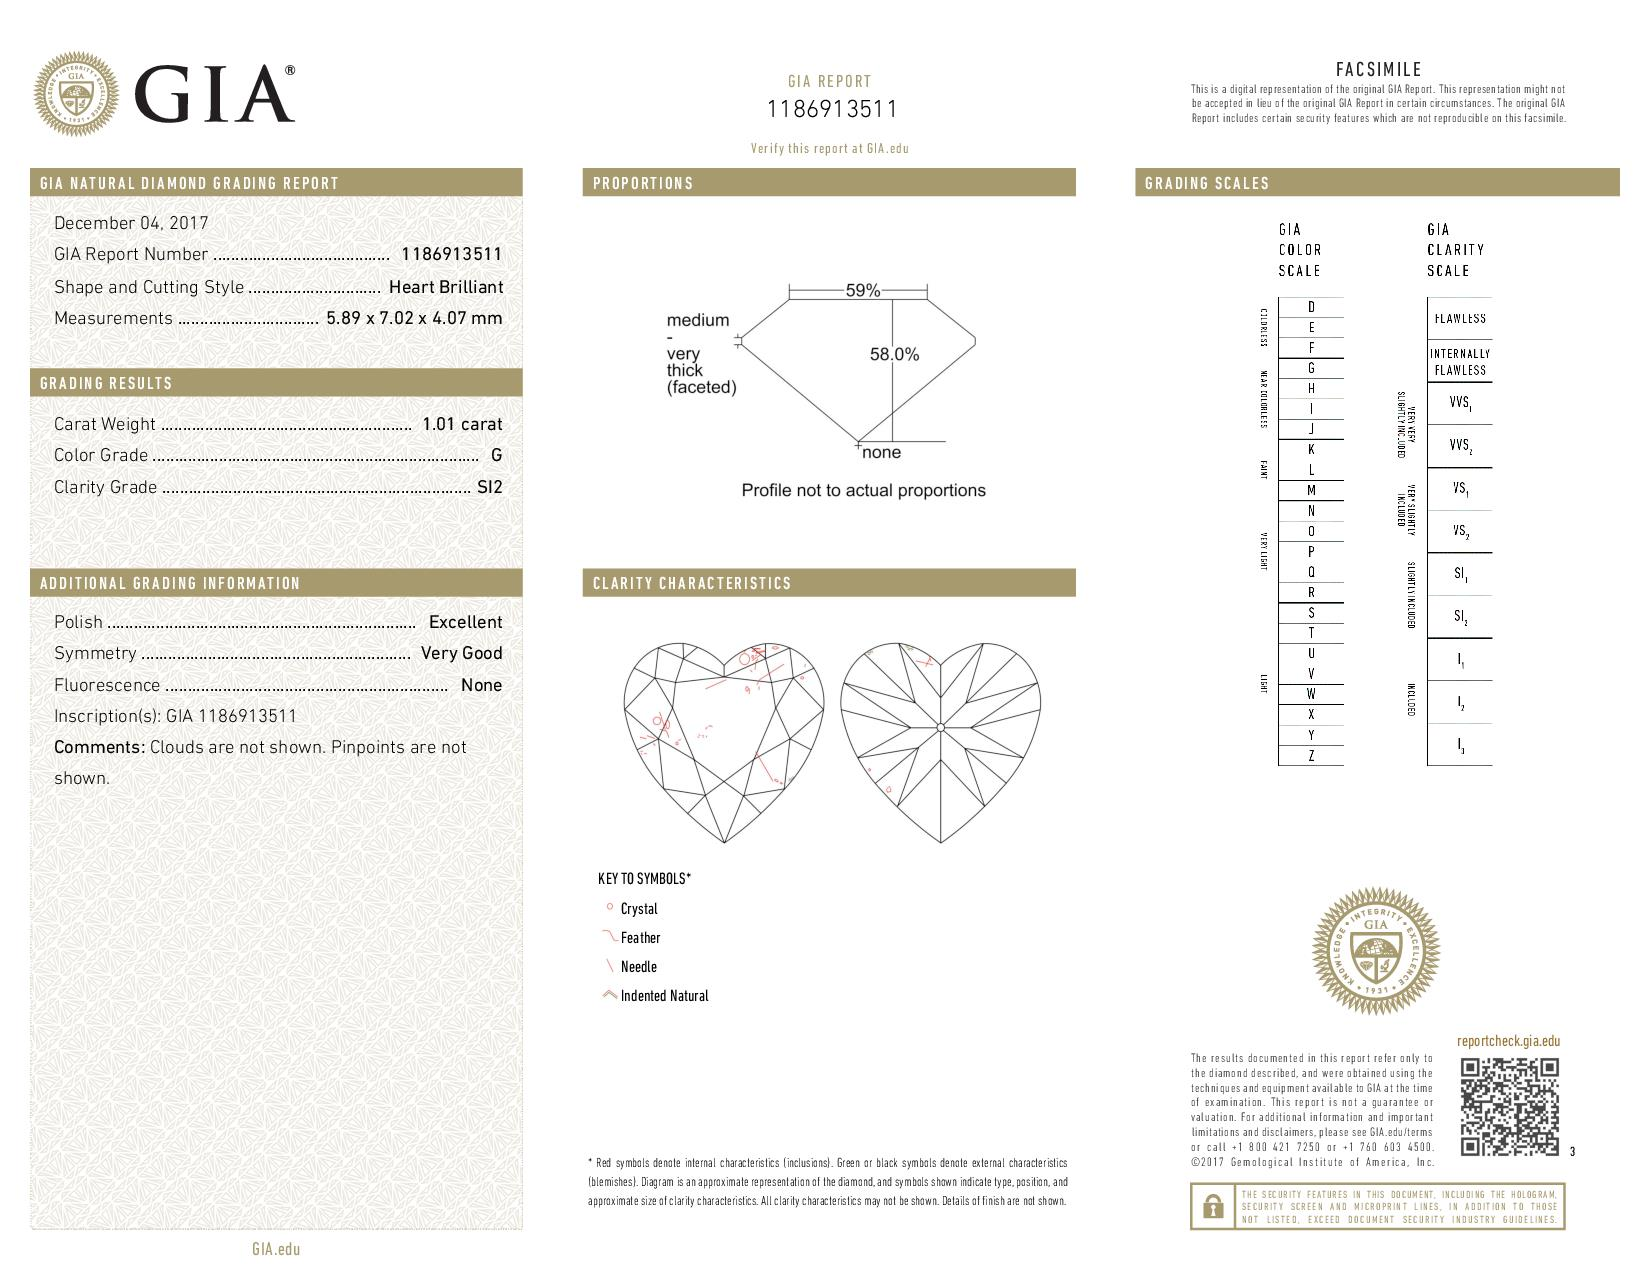 This is a 1.01 carat heart shape, G color, SI2 clarity natural diamond accompanied by a GIA grading report.